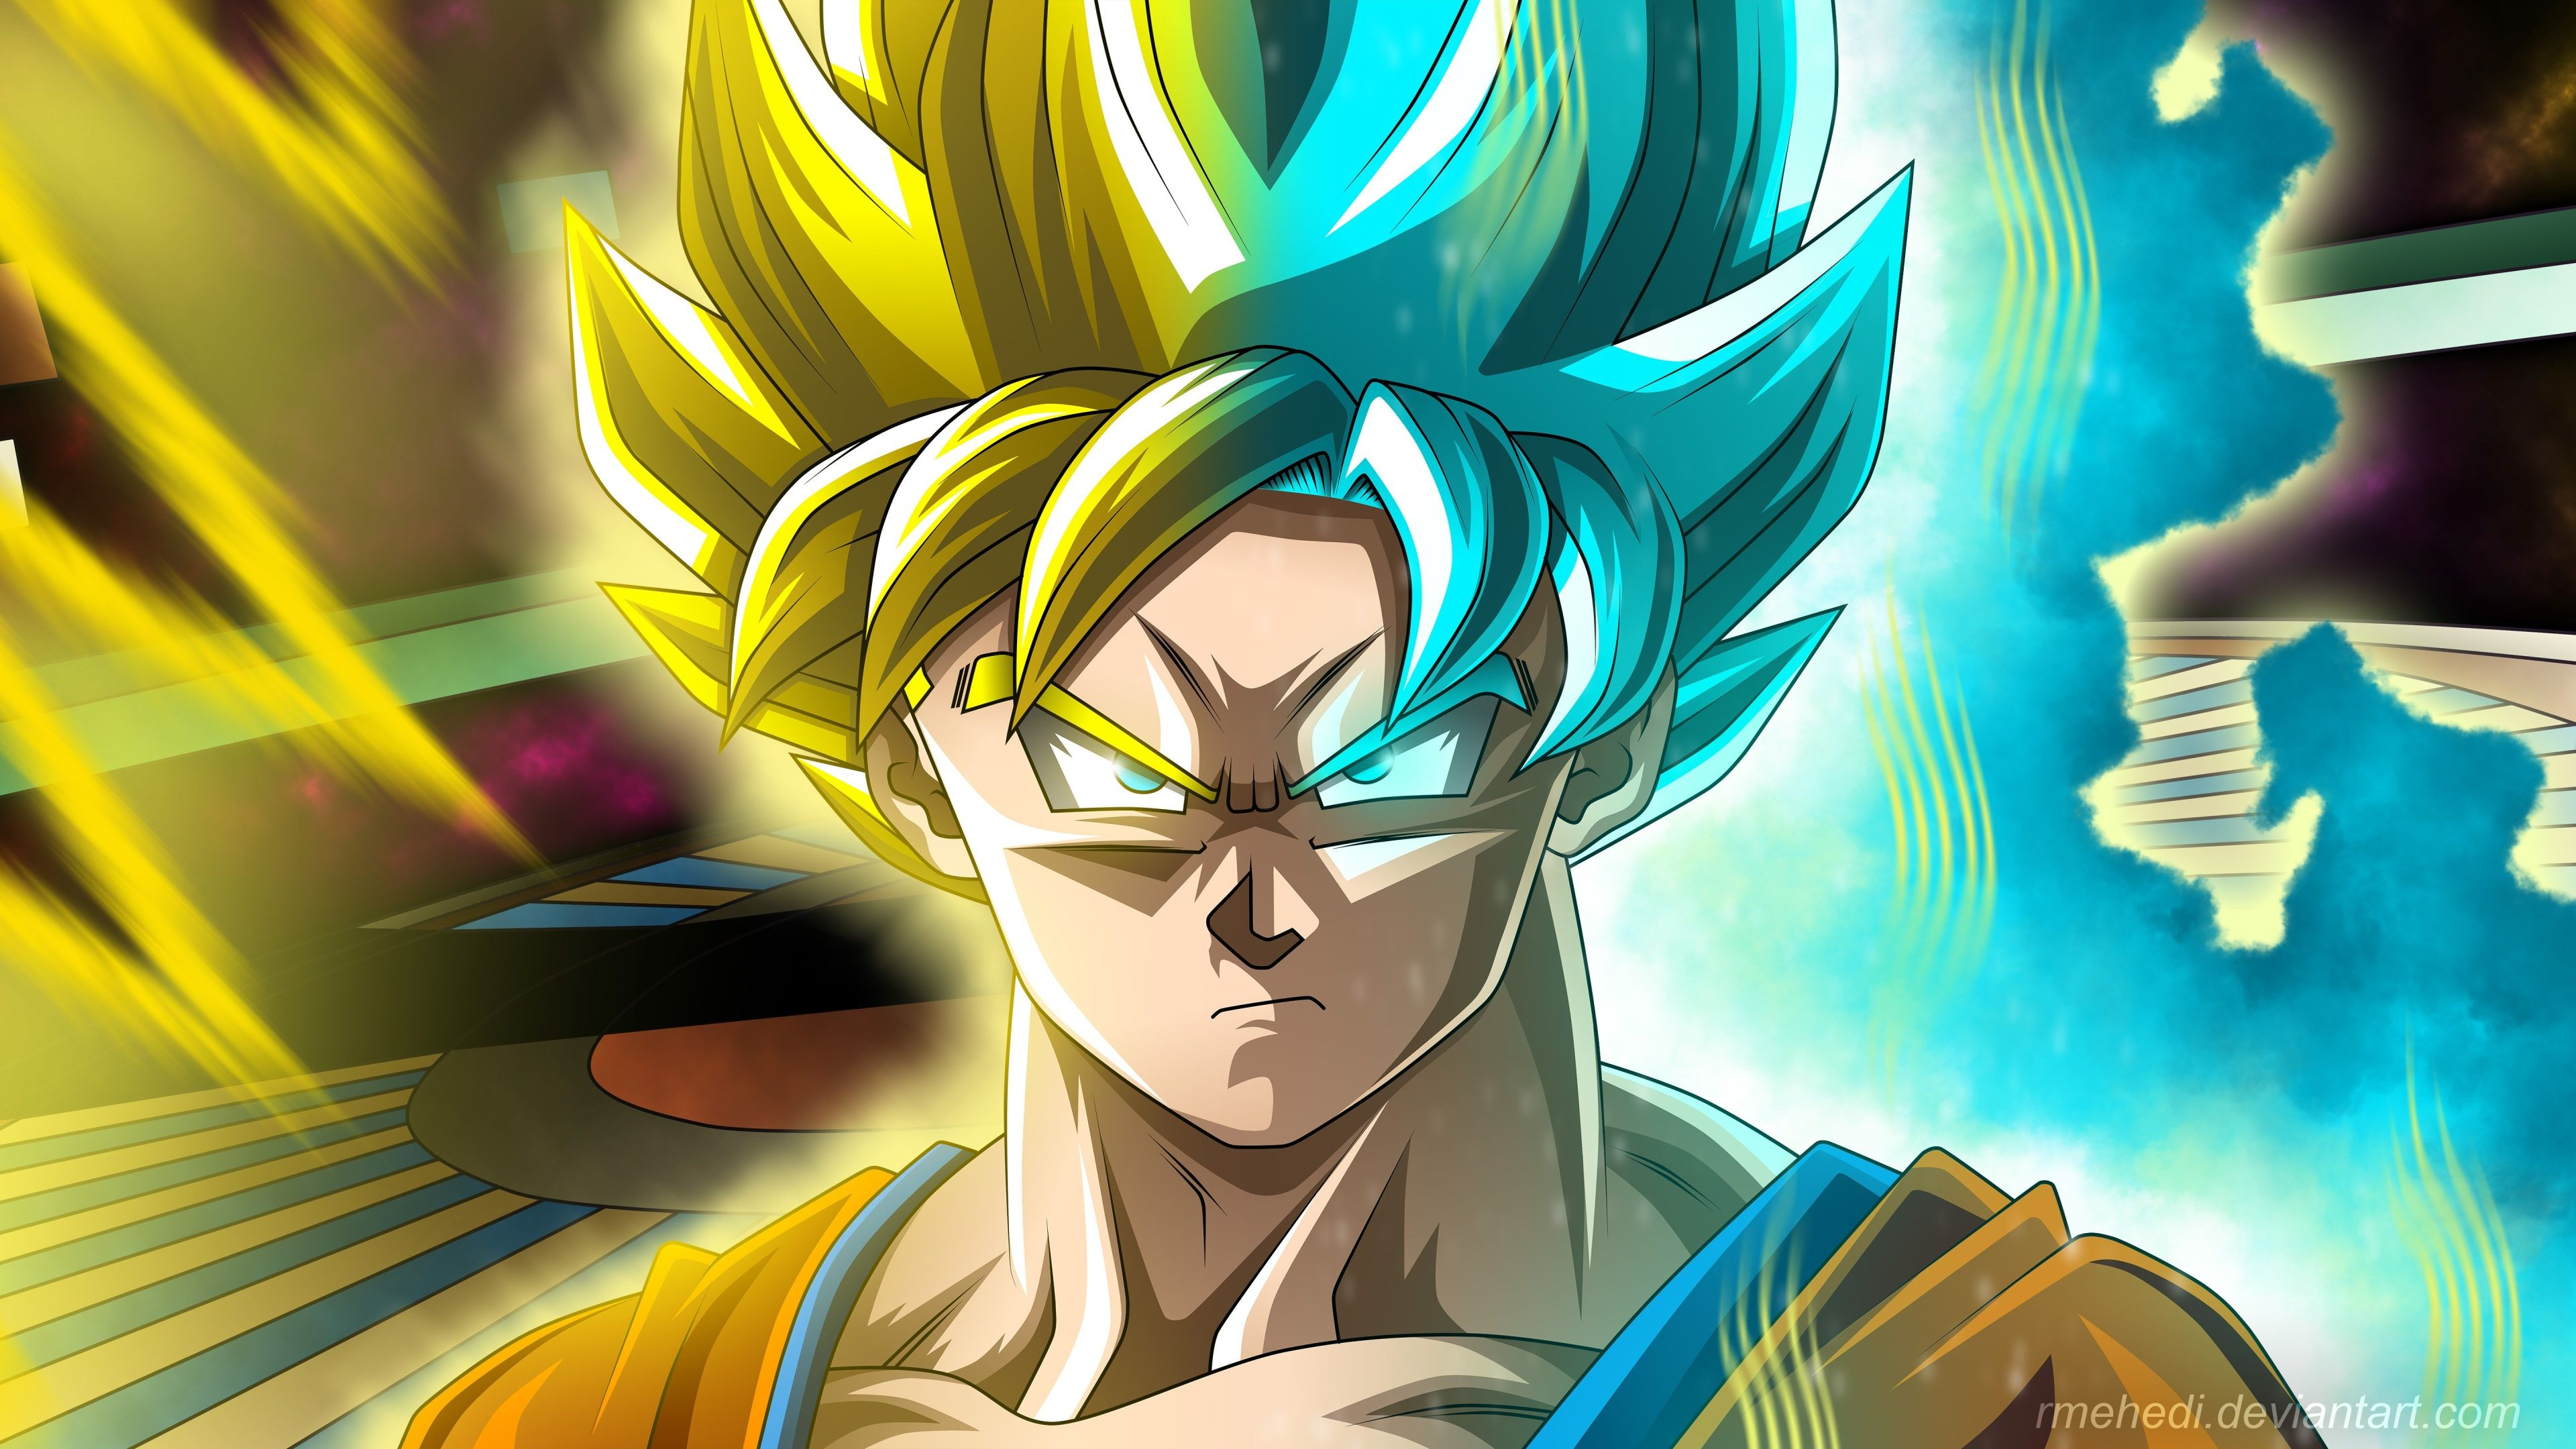 3840x2160 Dragon Ball Super 4k Desktops Wallpapers Dragon